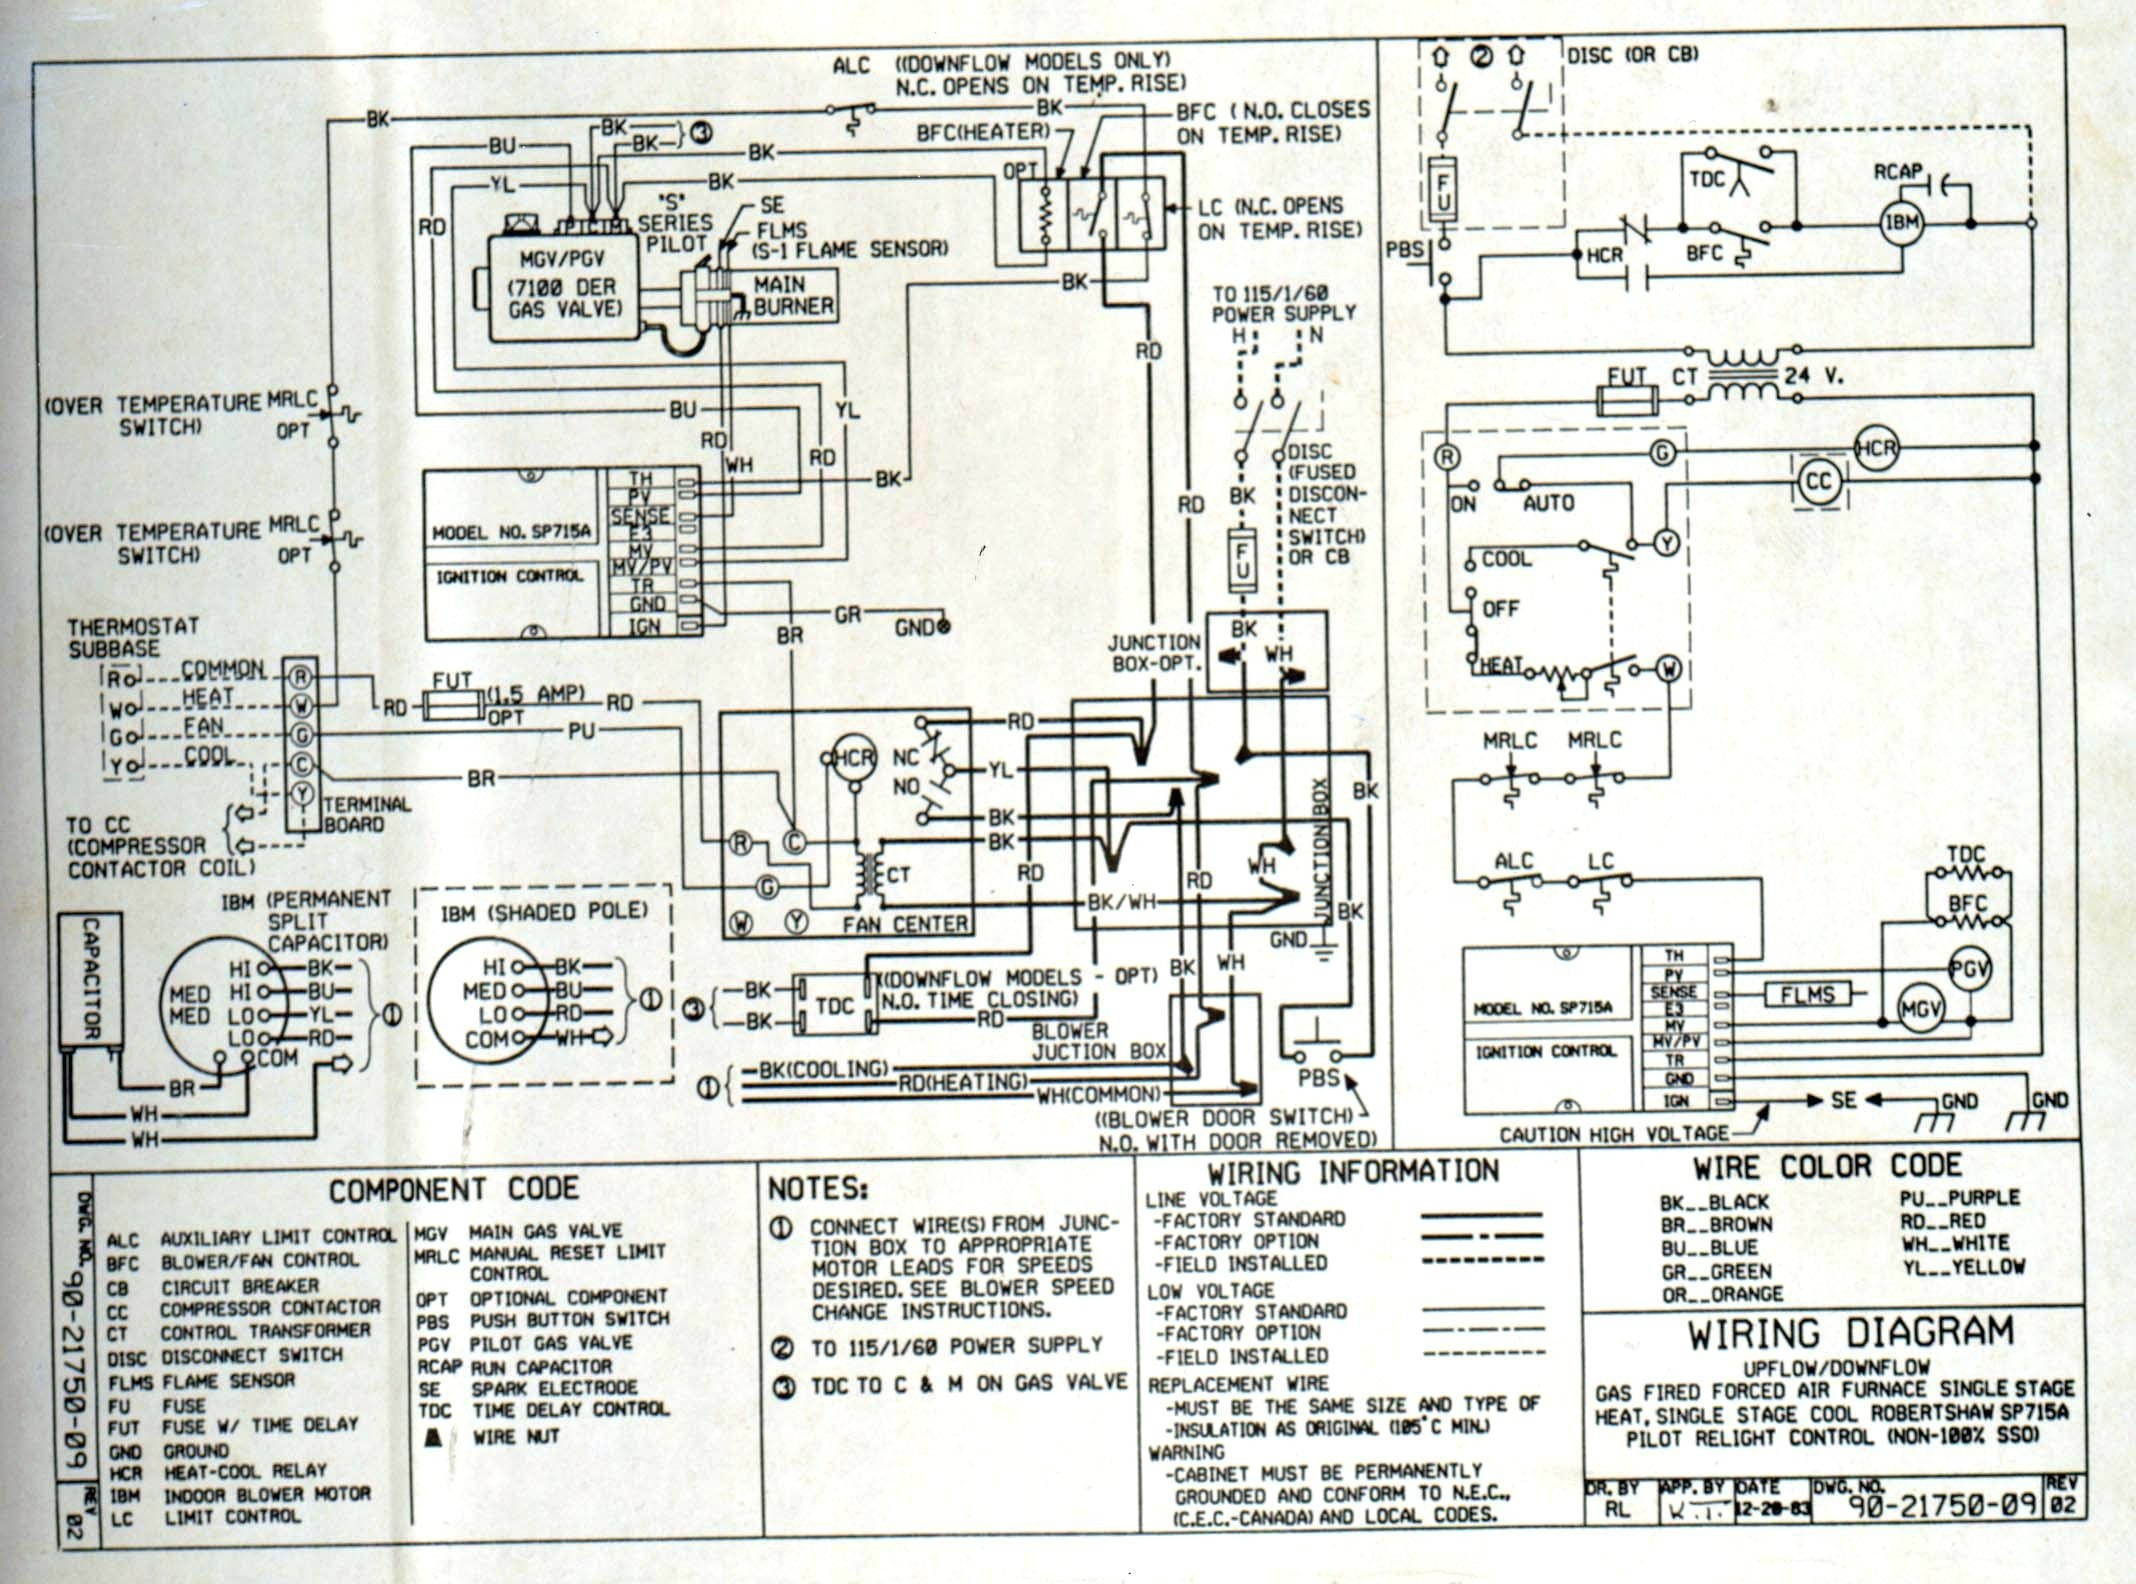 carrier ac unit wiring diagram Download-Package Air Conditioning Unit Wiring Diagram Save Carrier Electric Furnace Wiring Diagrams for Payne Wiring Diagram 16-g